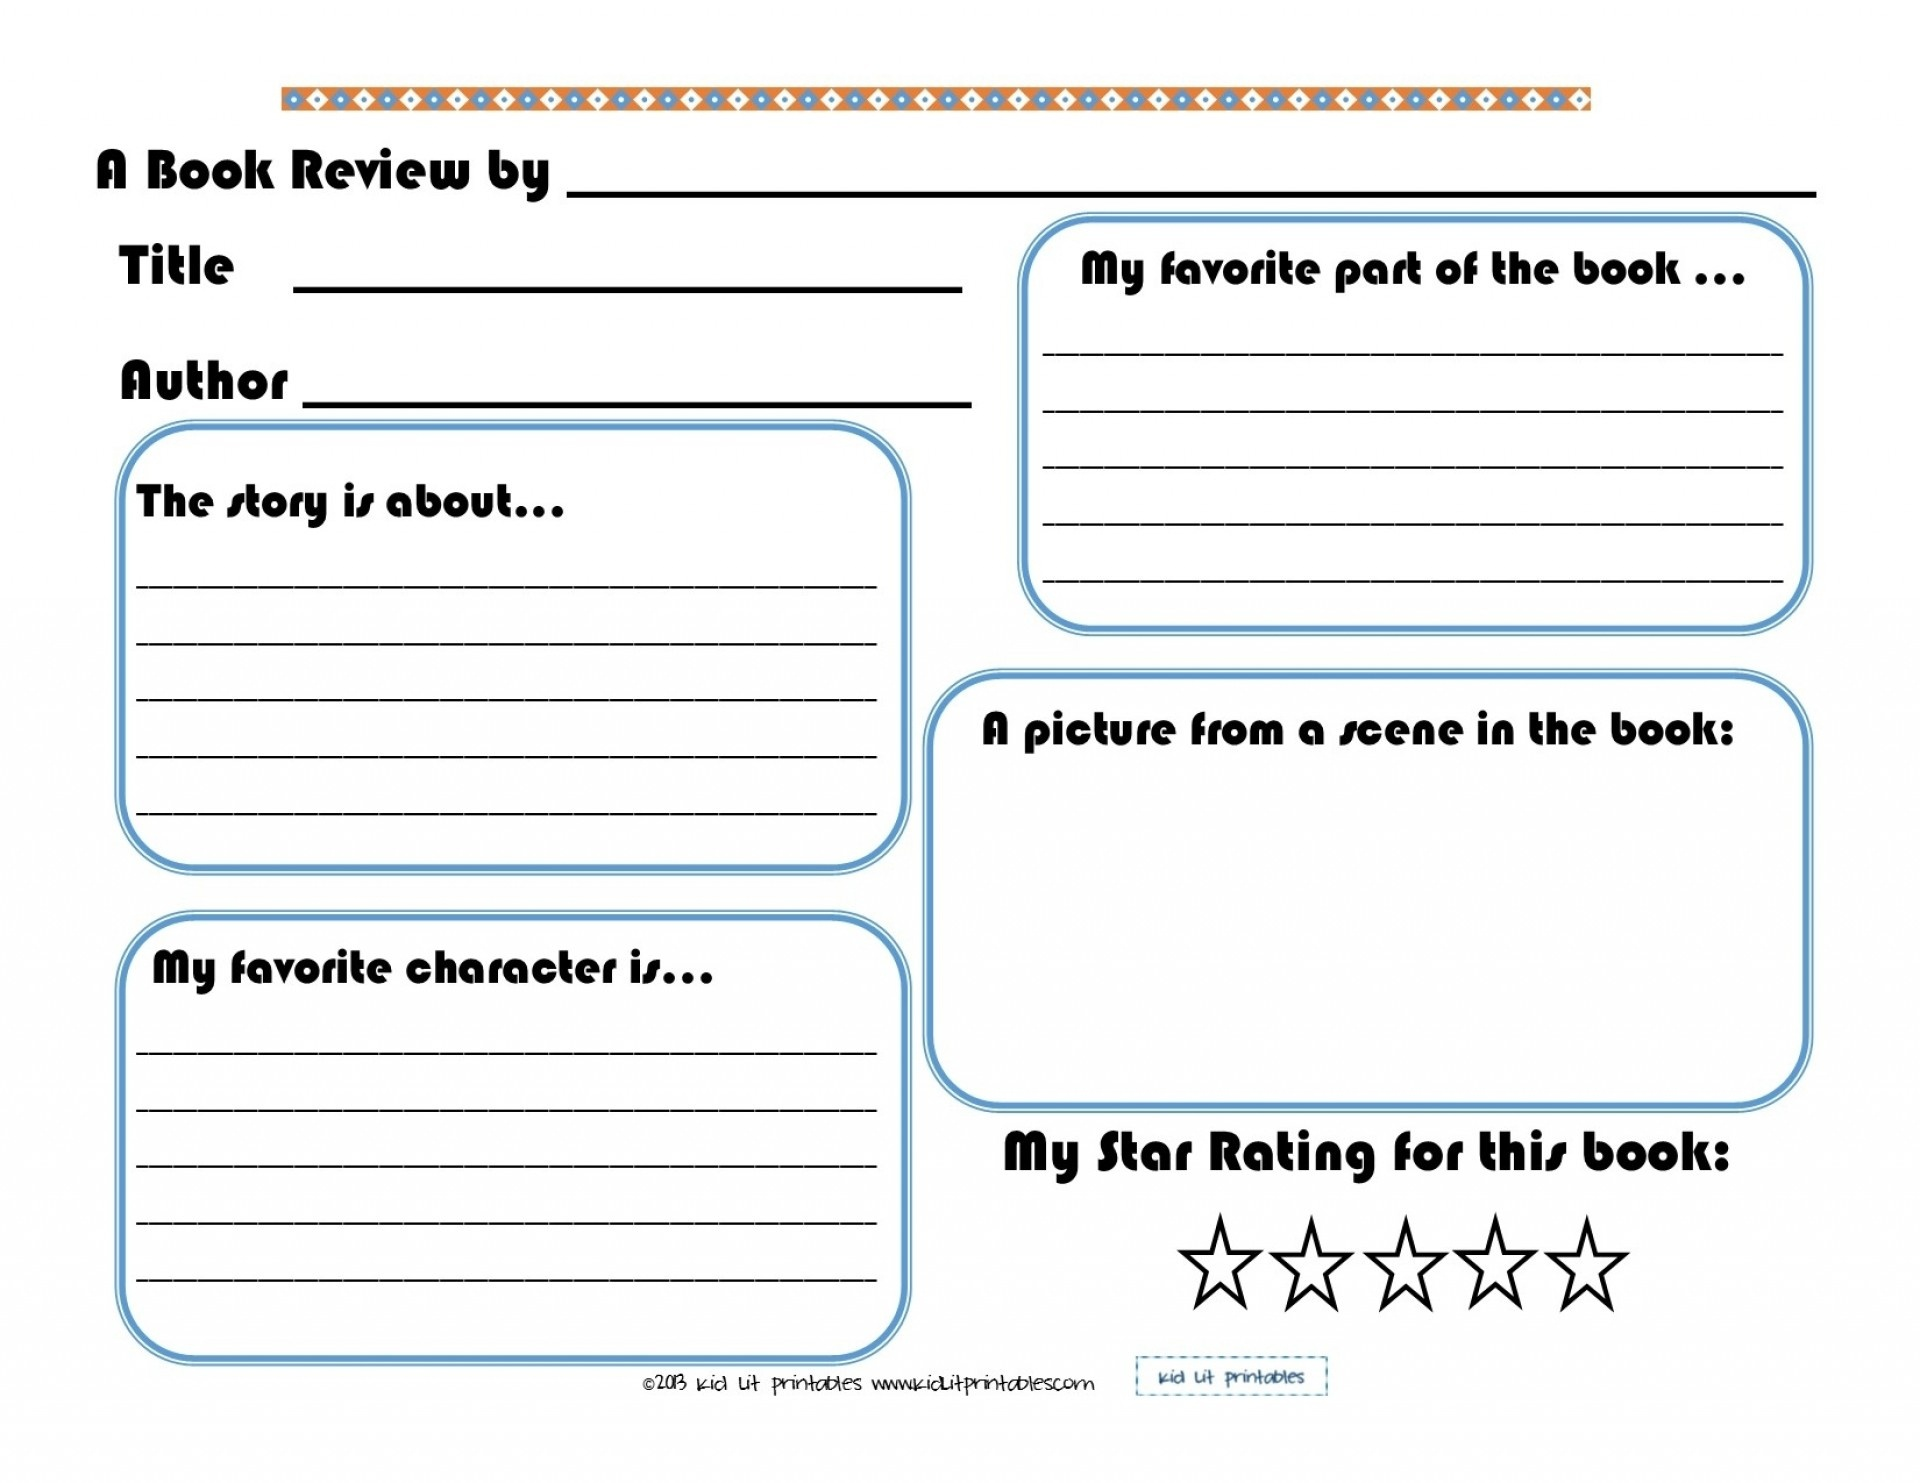 009 Best Images Of Printable Elementary Book Report Forms Pertaining - Free Printable Book Report Forms